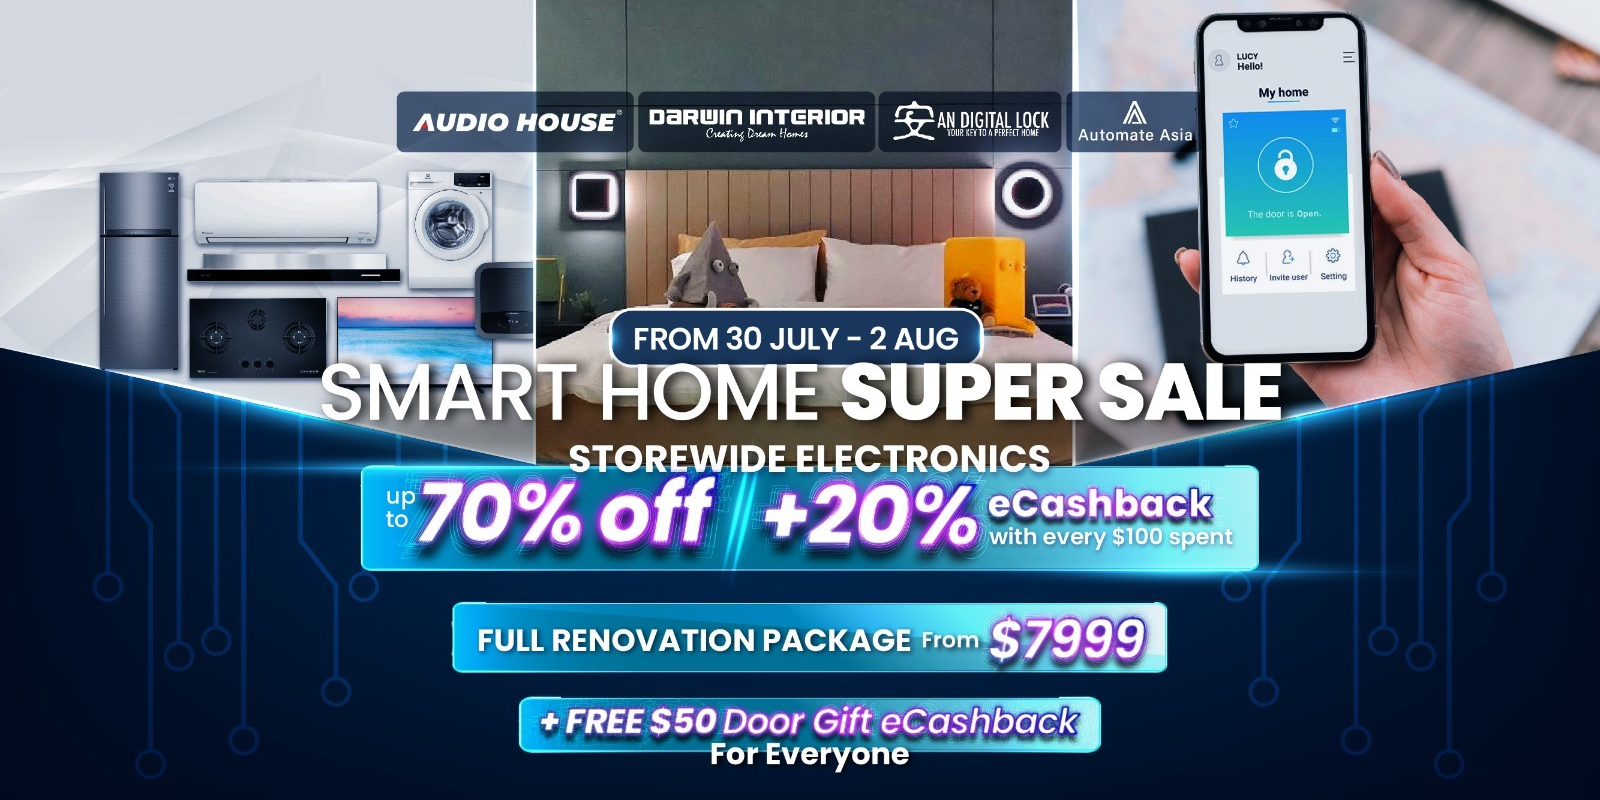 [Audio House Smart Home Super Sale] Up to 70% OFF Storewide + 20% eCashback with Every $100 Spent +